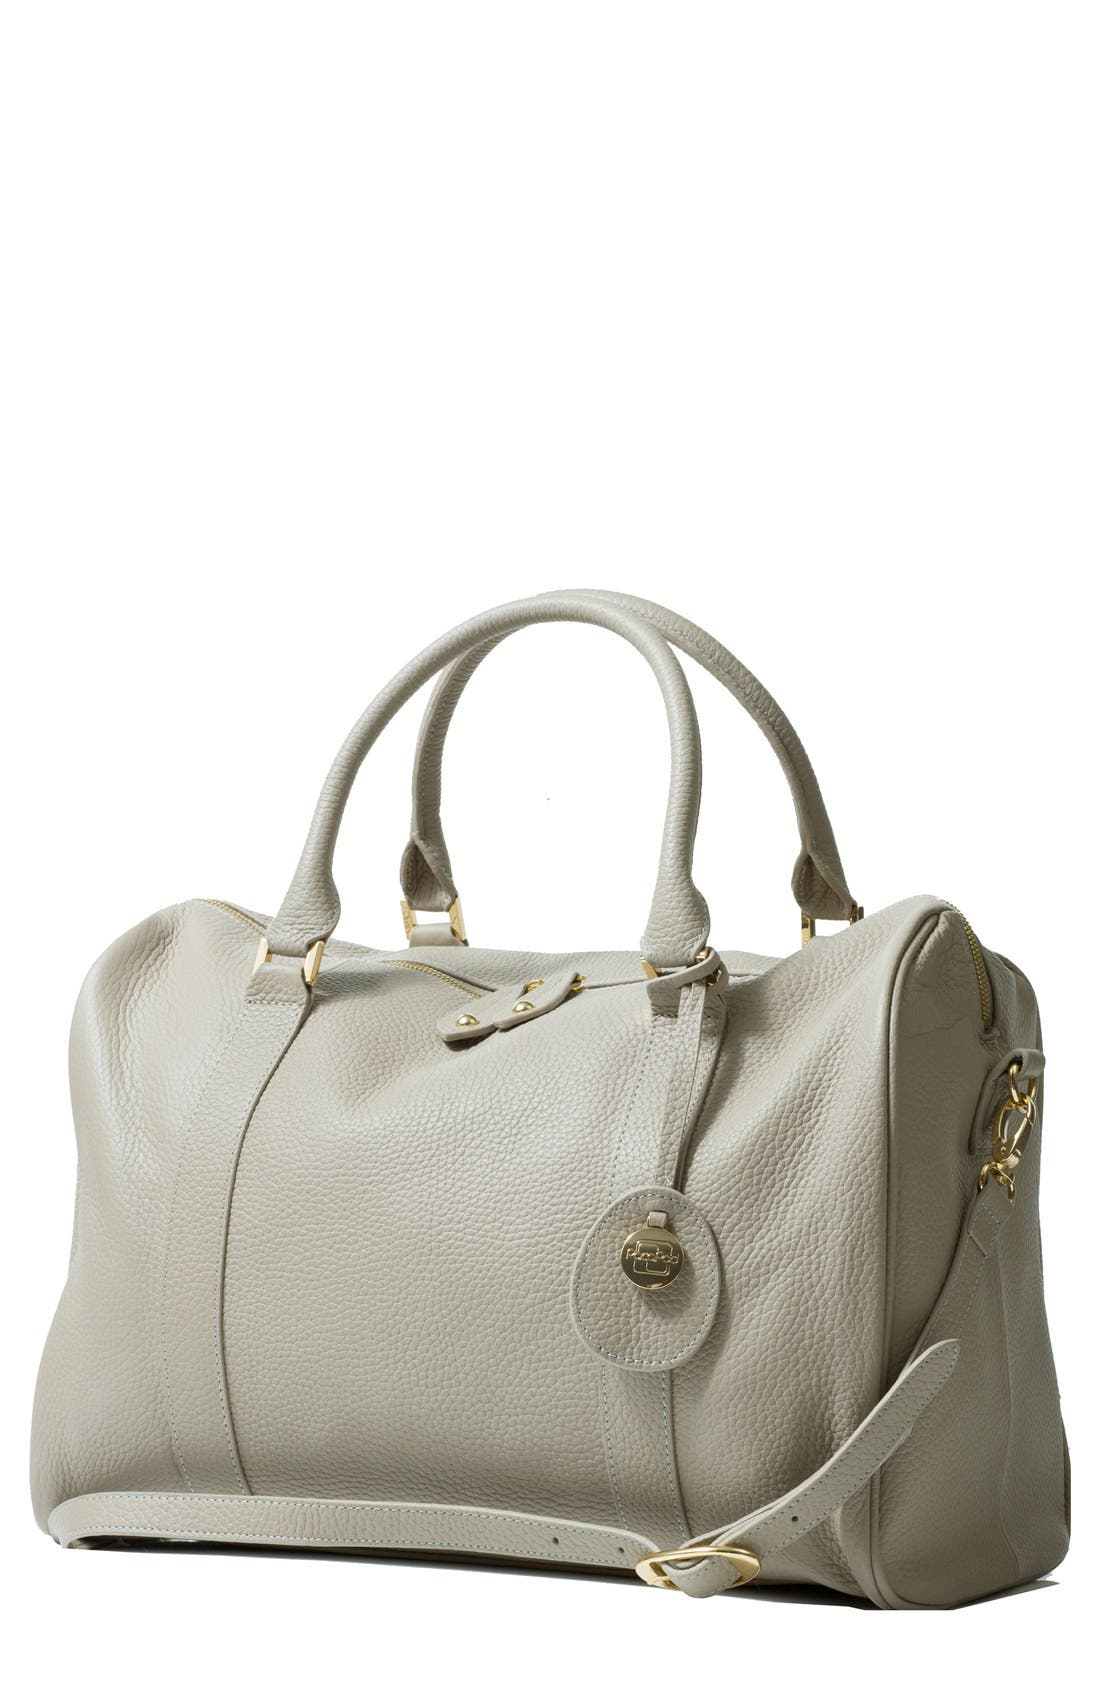 PacaPod 'Firenze' Leather Diaper Bag